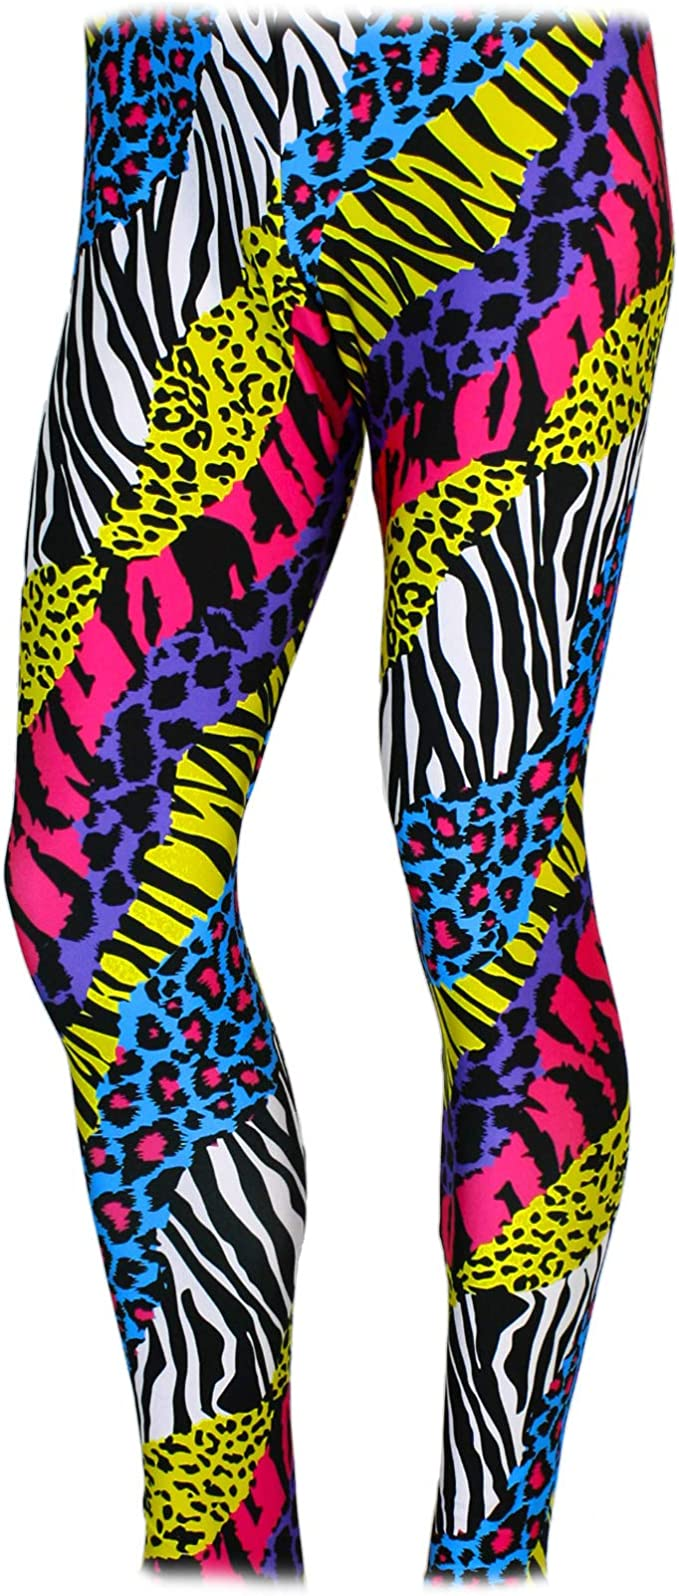 80s Jeans, Pants, Leggings Mens 80s Heavy Metal Pants Neon Animal Print Rainbow $37.49 AT vintagedancer.com